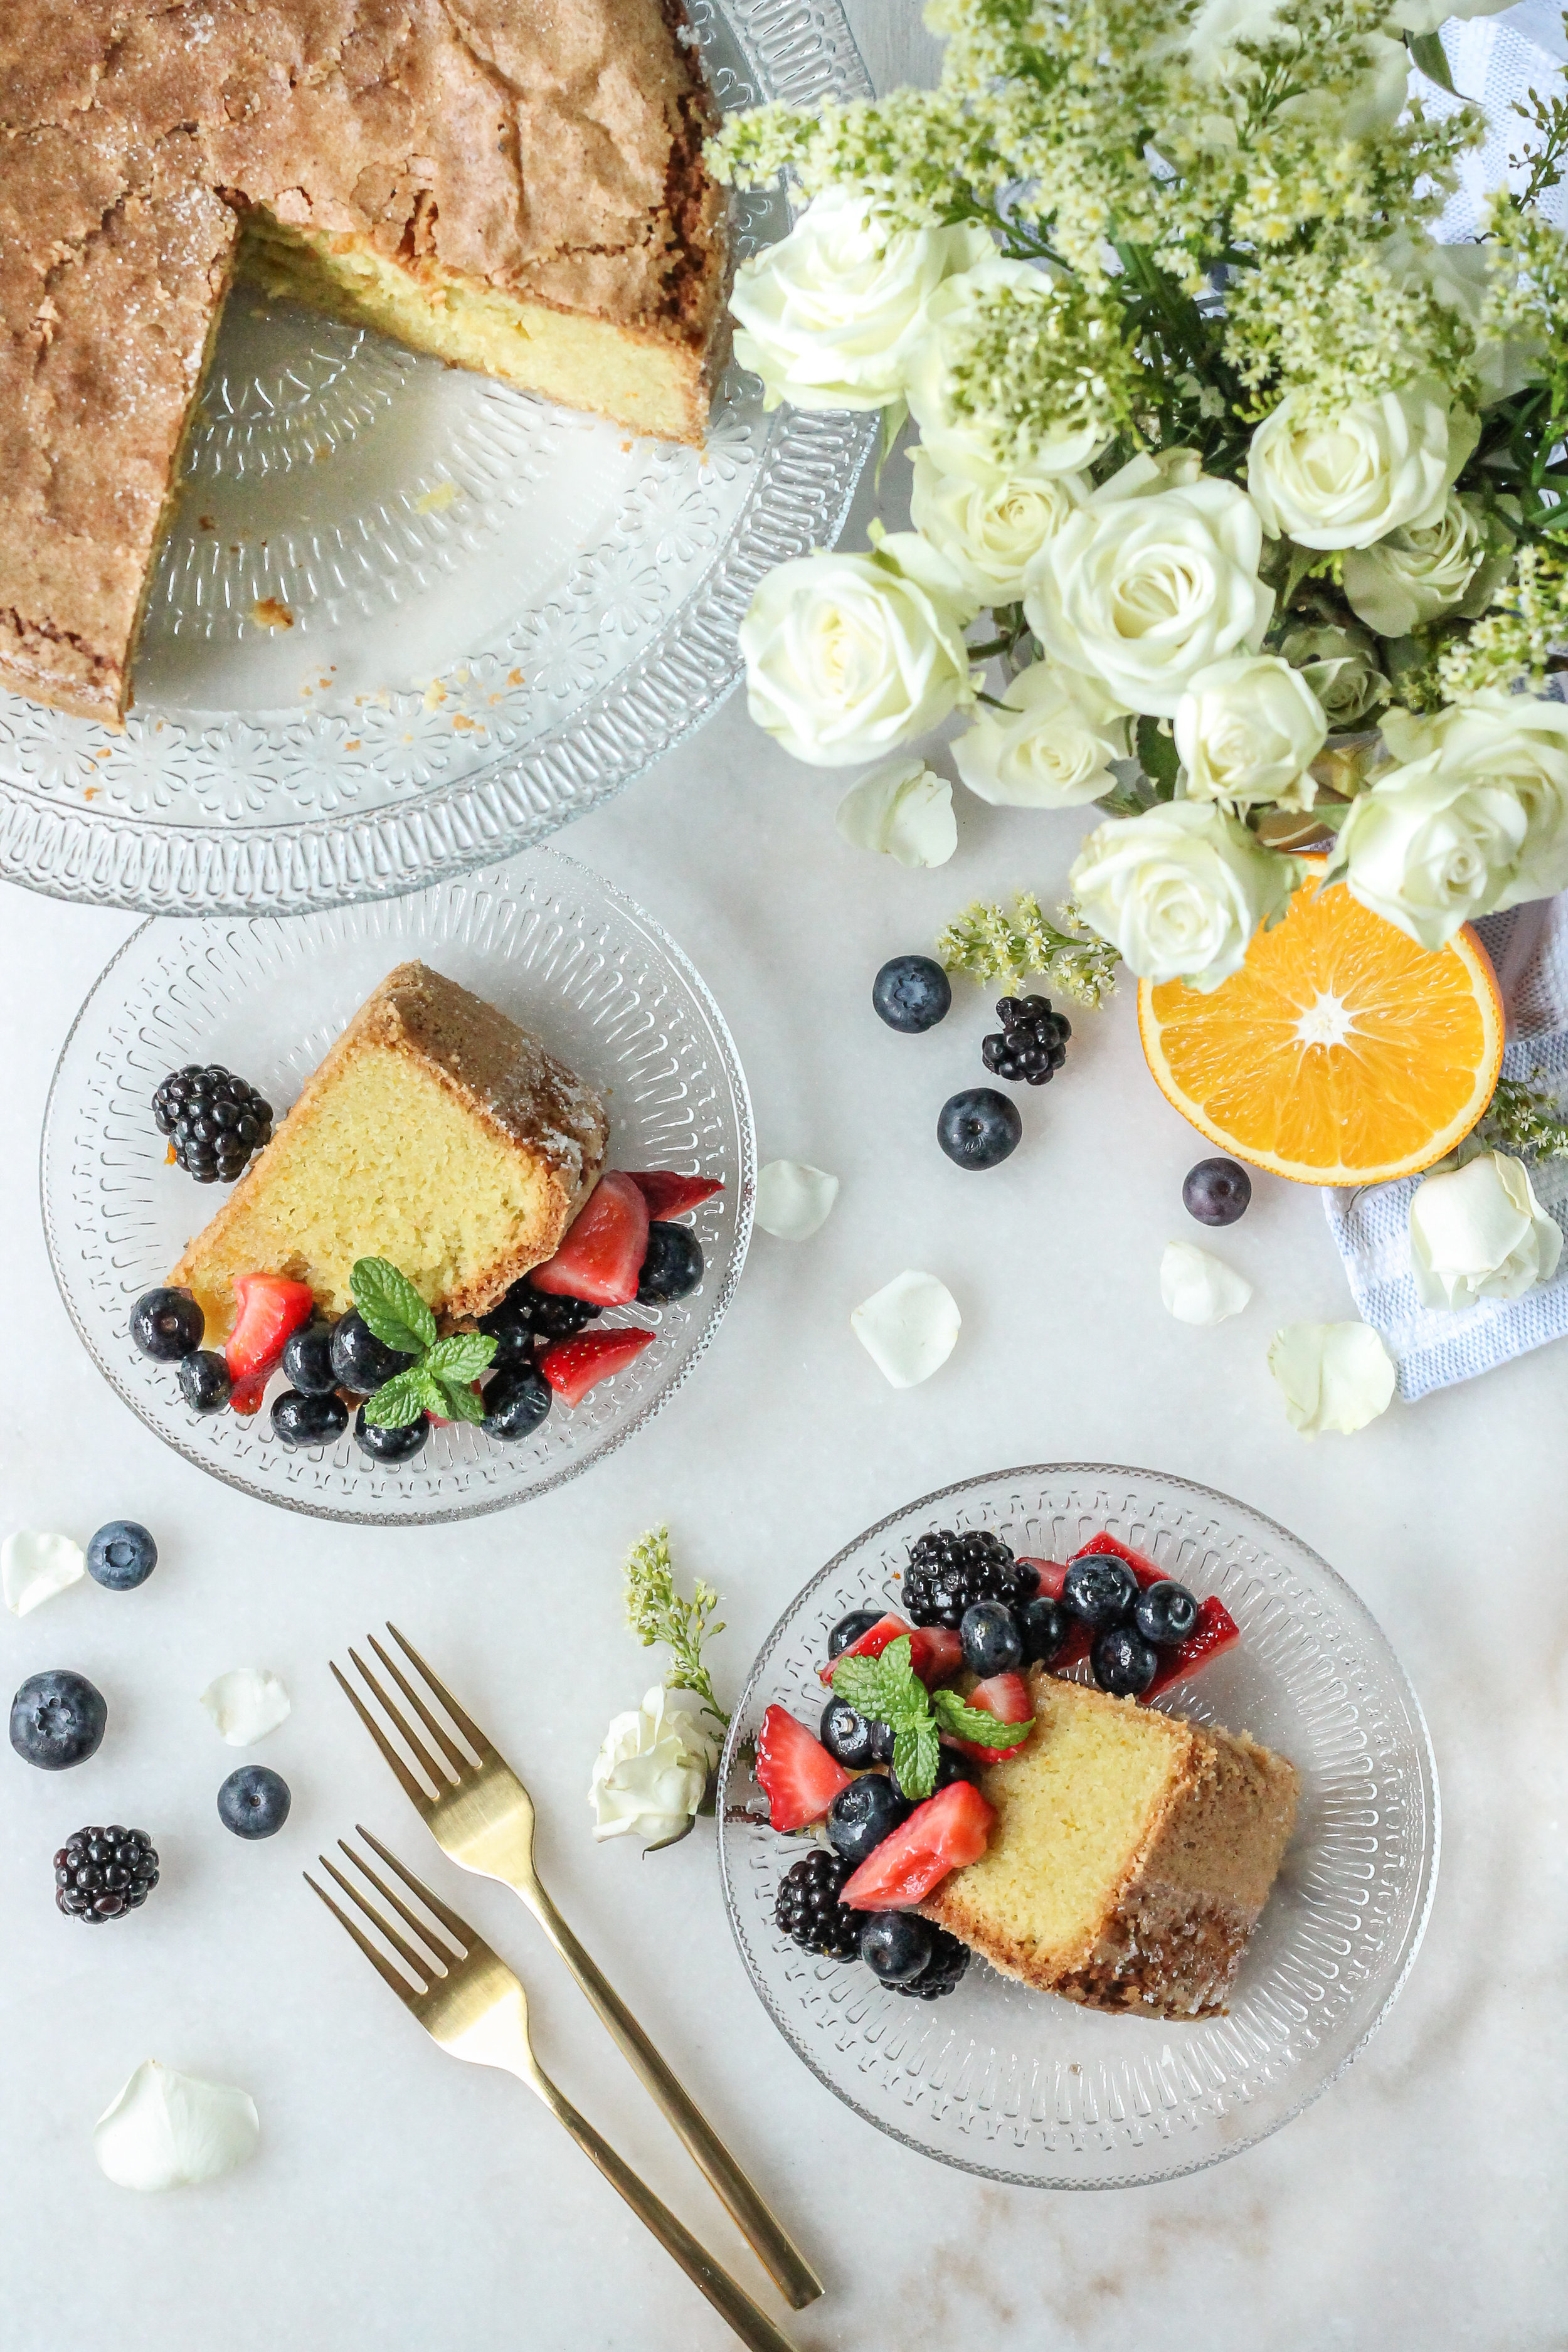 This summery olive oil cake is infused with fresh oranges and served alongside summer berries soaked in a Grand Marnier syrup!  Find the recipe for this amazing dessert and many more on WWW.PEDANTICFOODIE.COM!